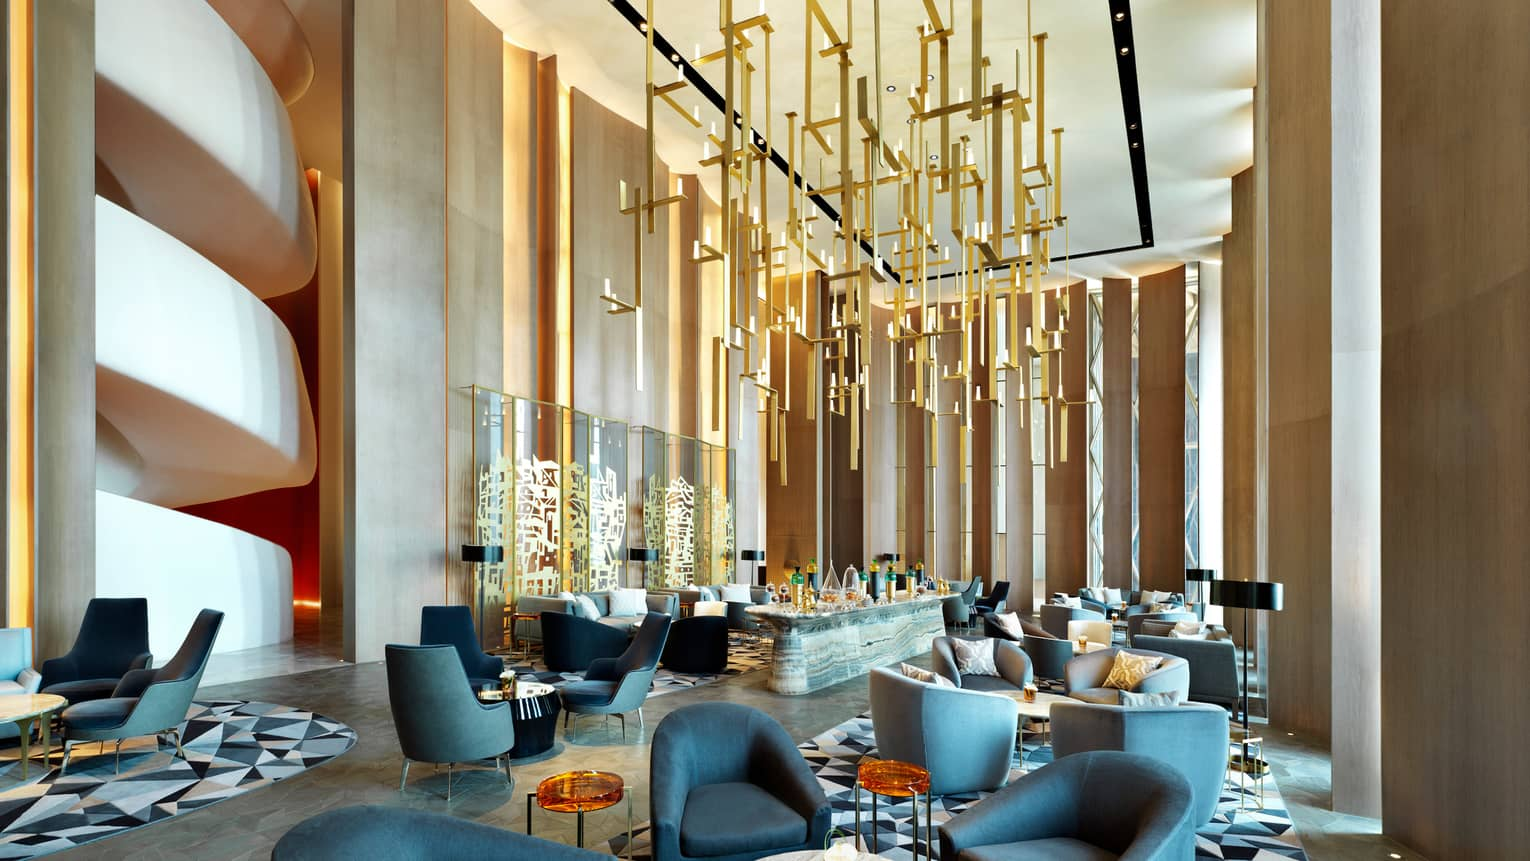 Modern dining chairs, tables in lounge with soaring ceilings, gold sculptures hanging from ceiling, wall